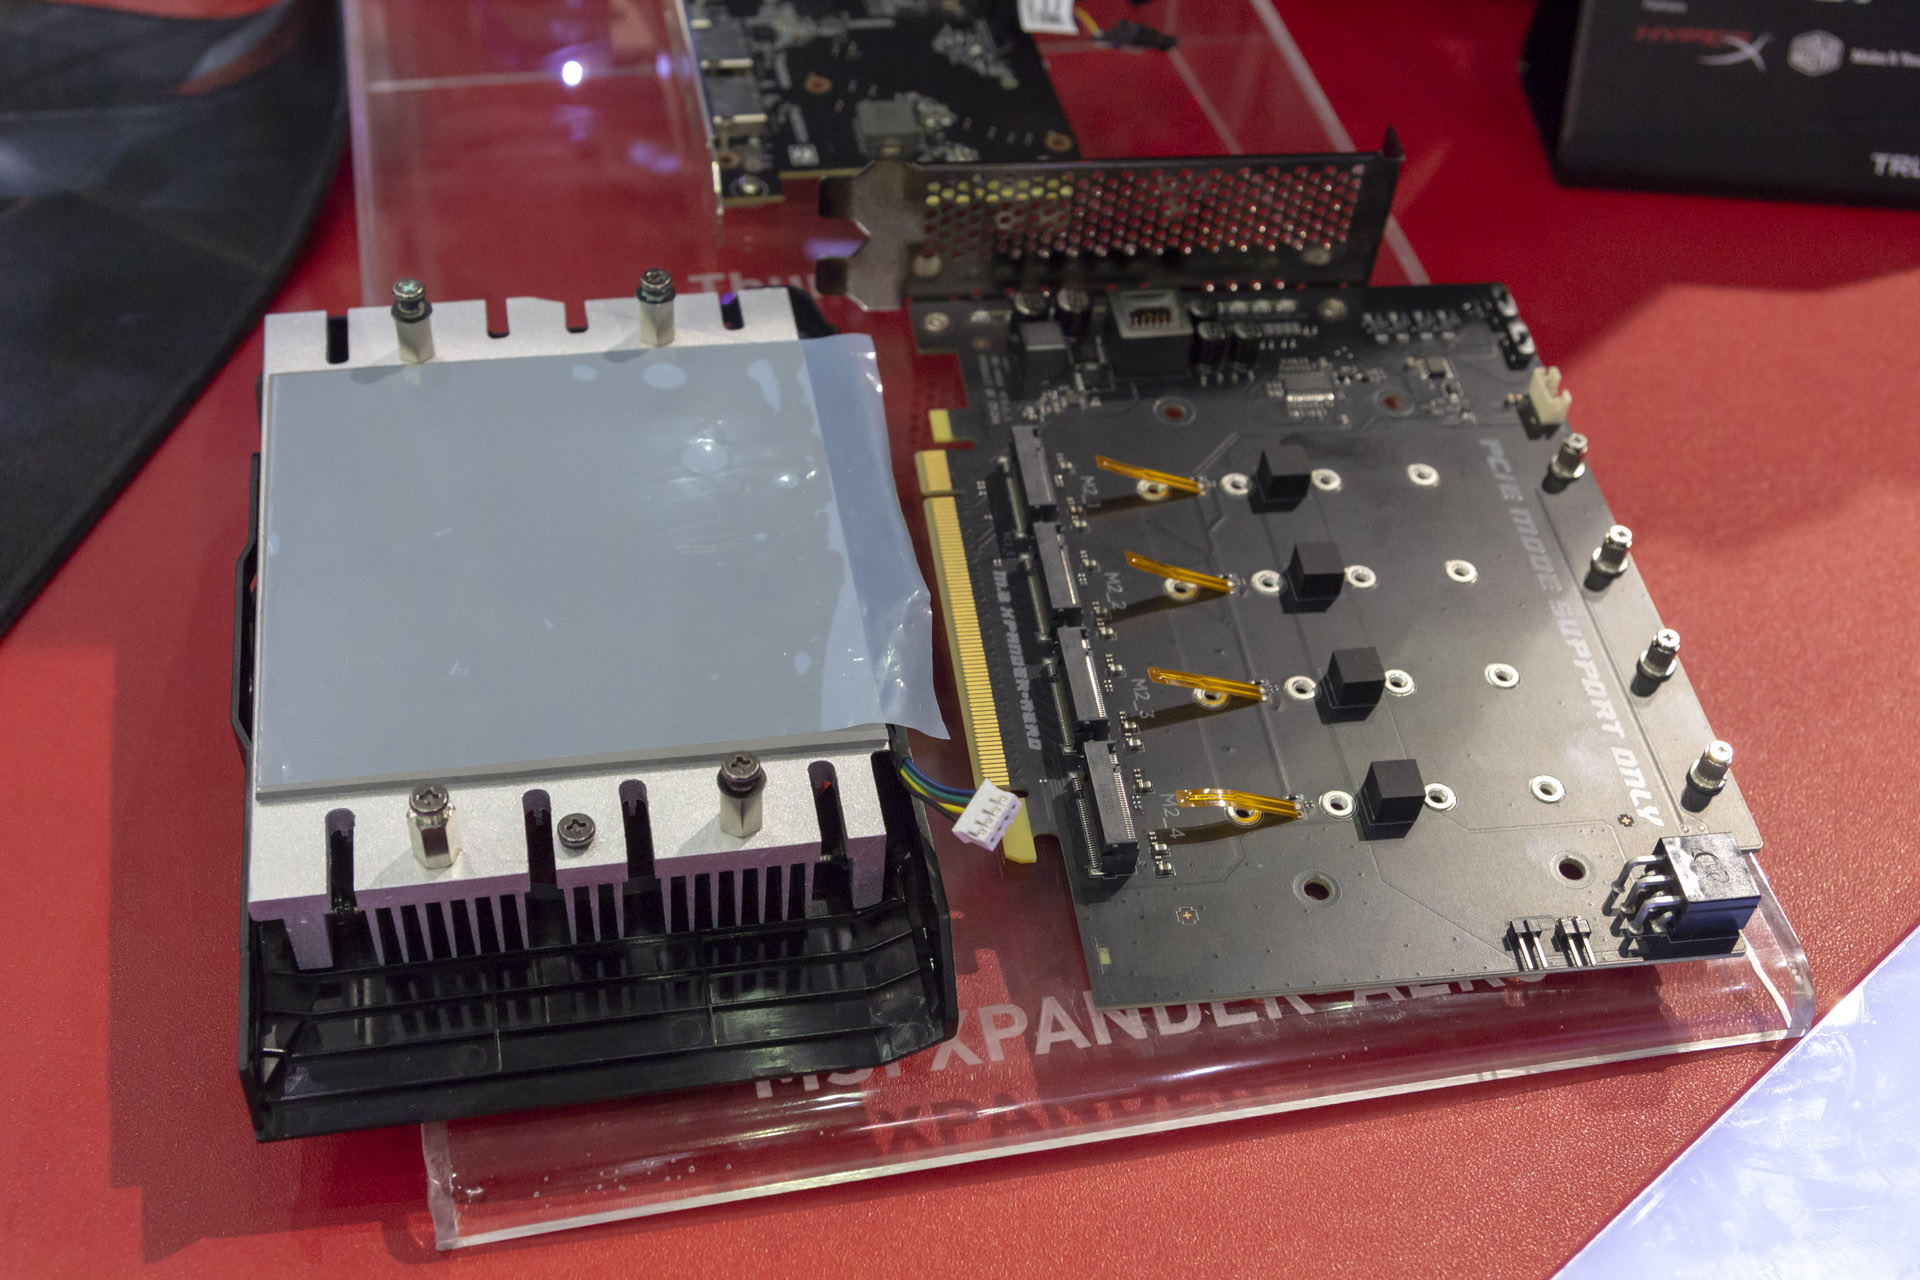 MSI Shows Off X399 And B450 Boards, M.2 Expansion Card